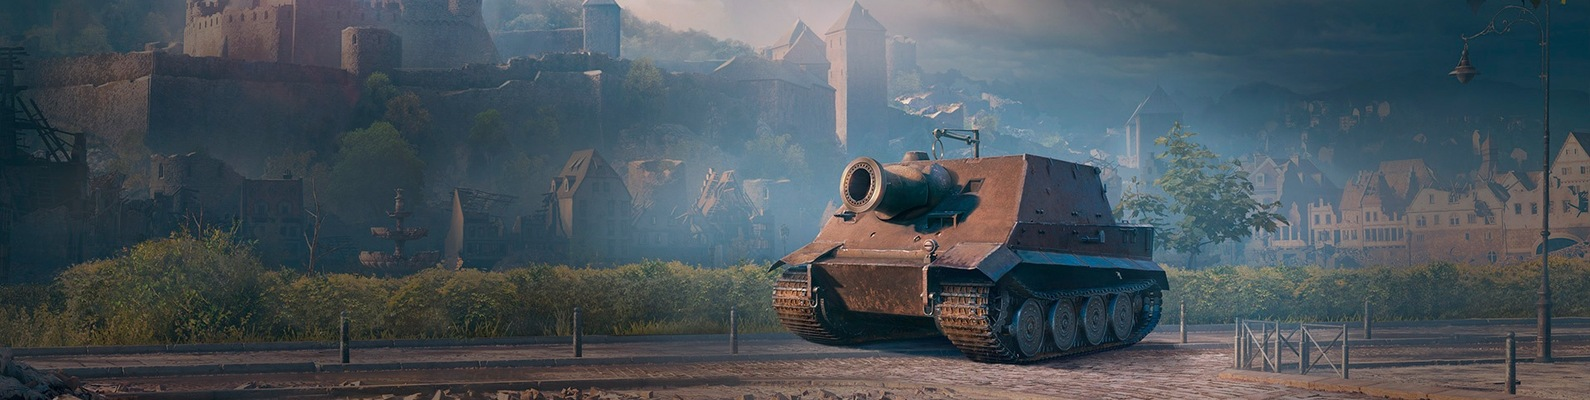 Игра в world of tanks на android